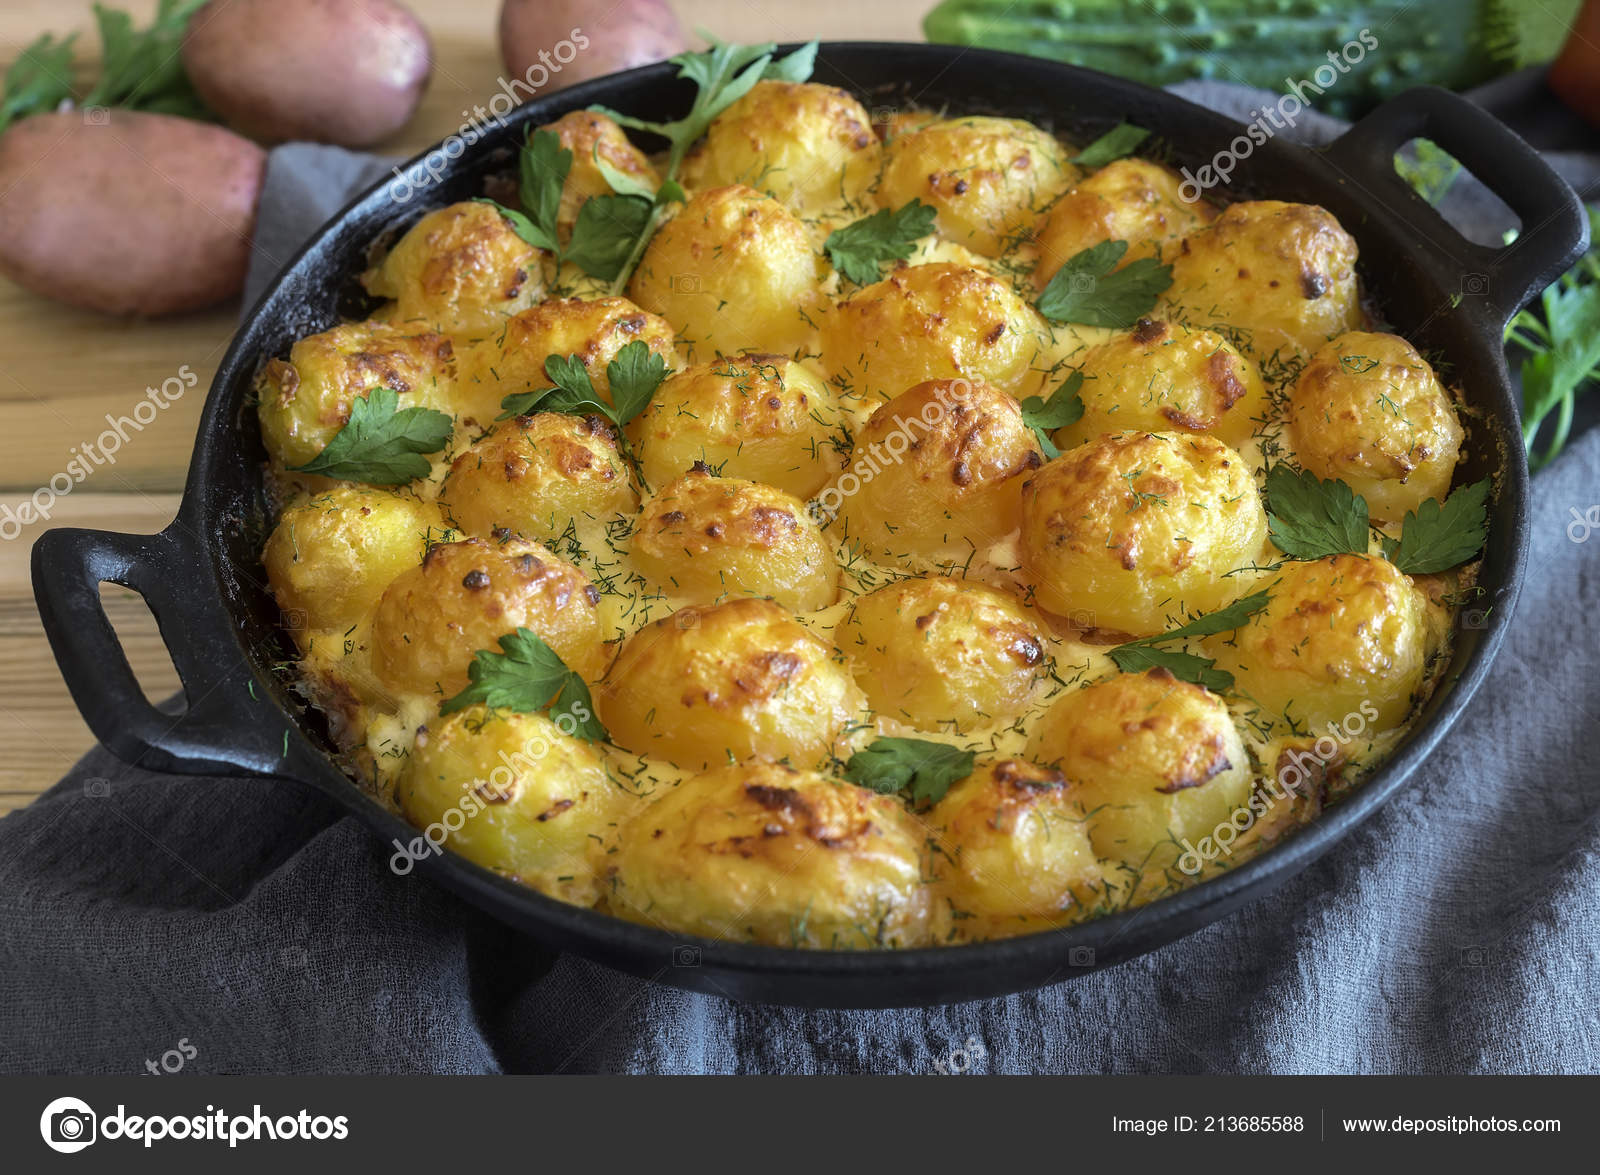 Fantastic Prince Potatoes Baked Oven Young Potatoes Cottage Cheese Eat Download Free Architecture Designs Scobabritishbridgeorg